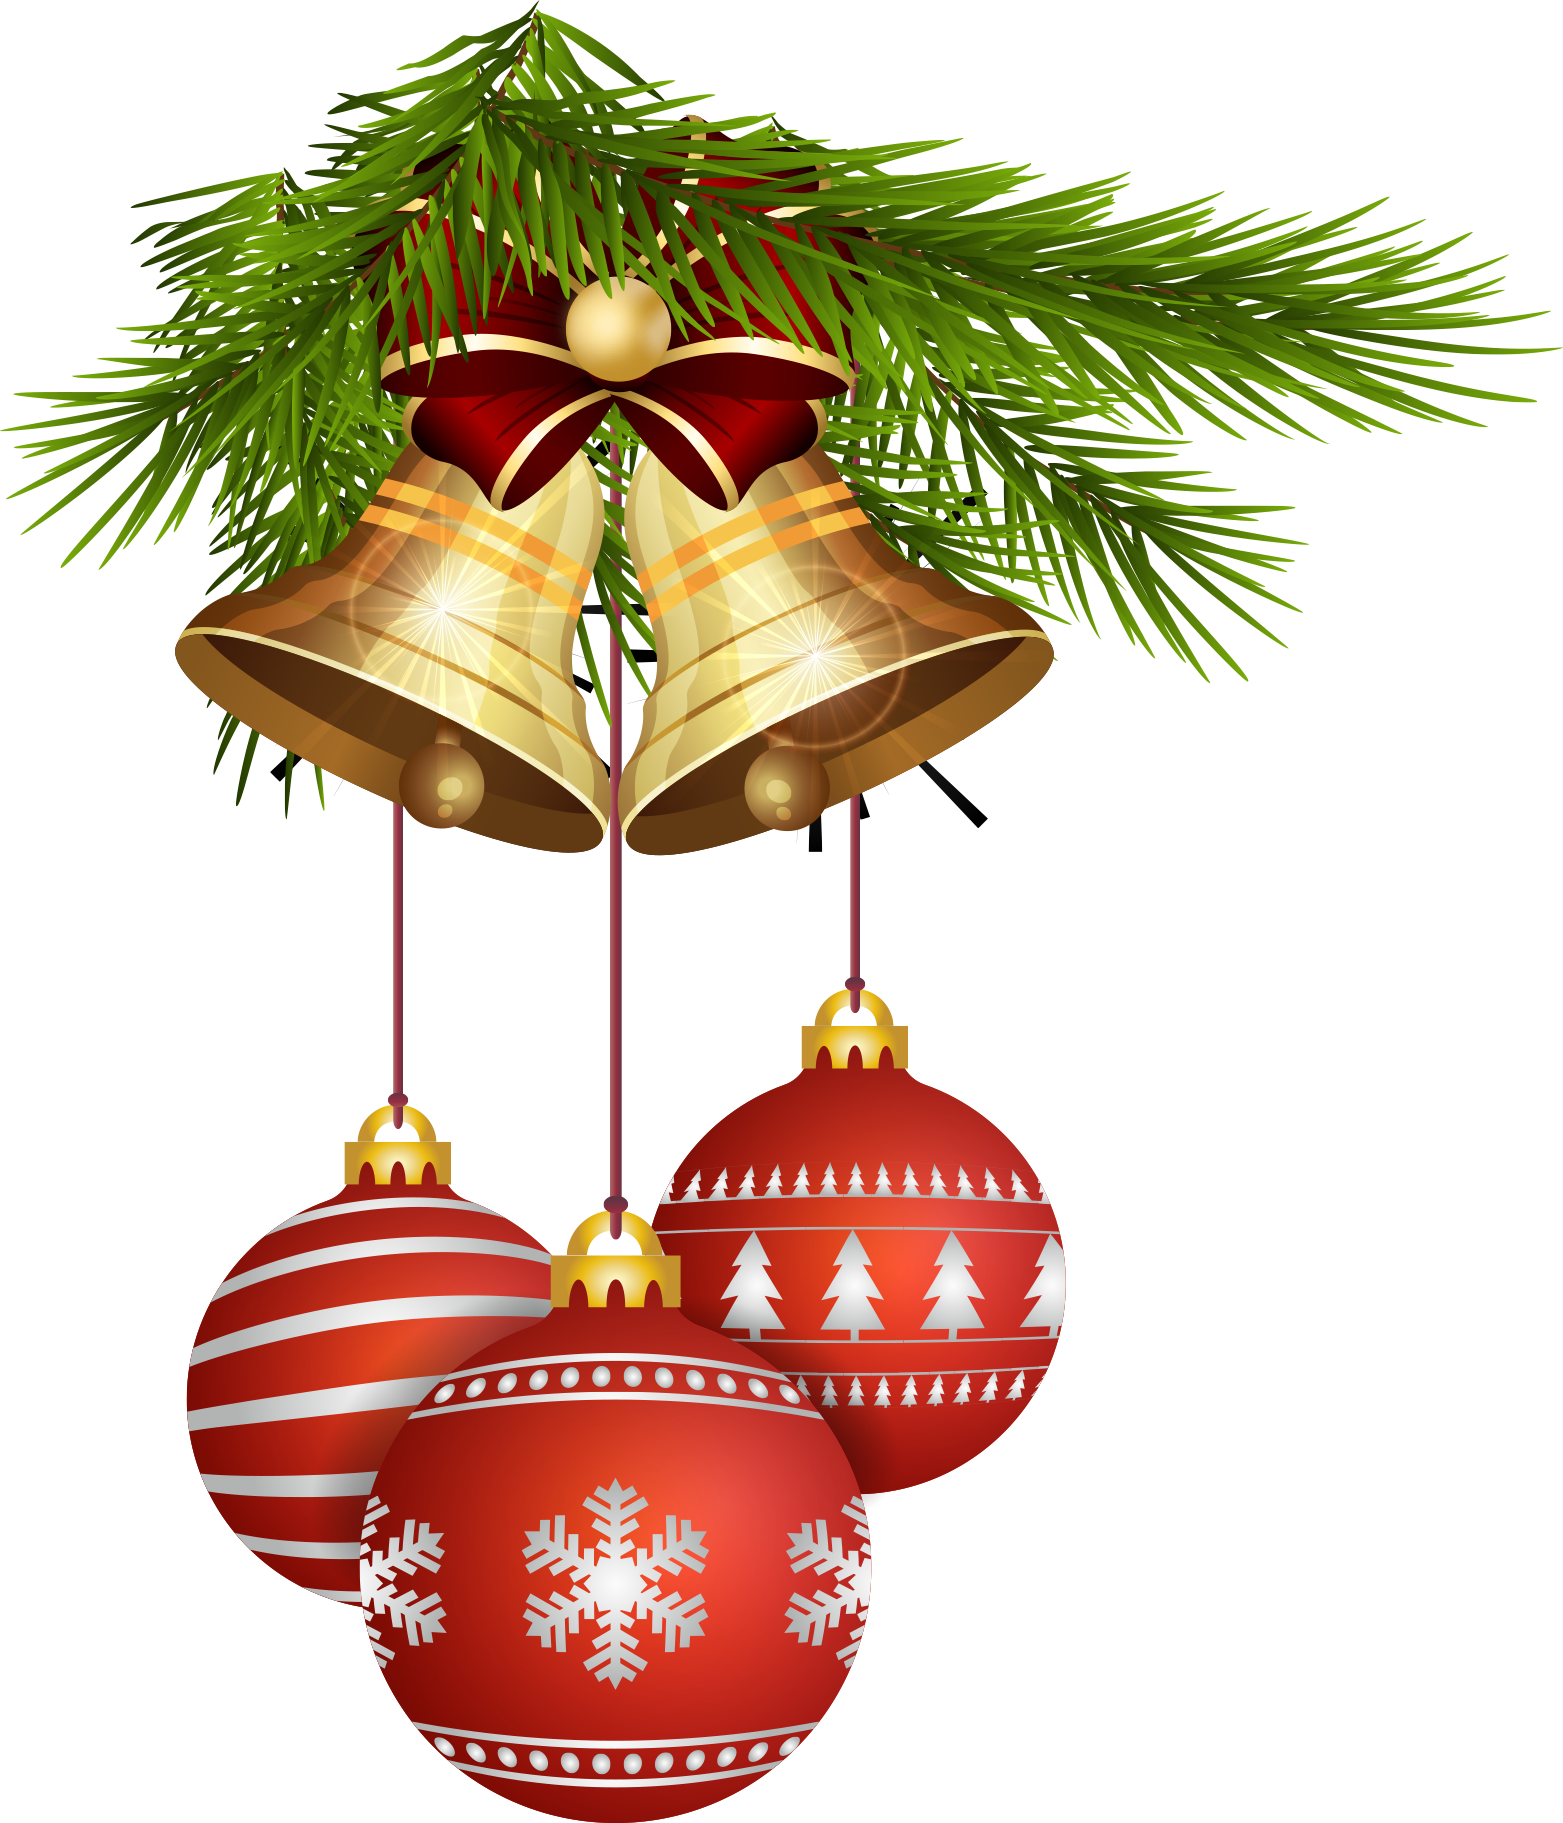 Christmas Decorations Png.Pin By Pngsector On Christmas Png Christmas Transparent